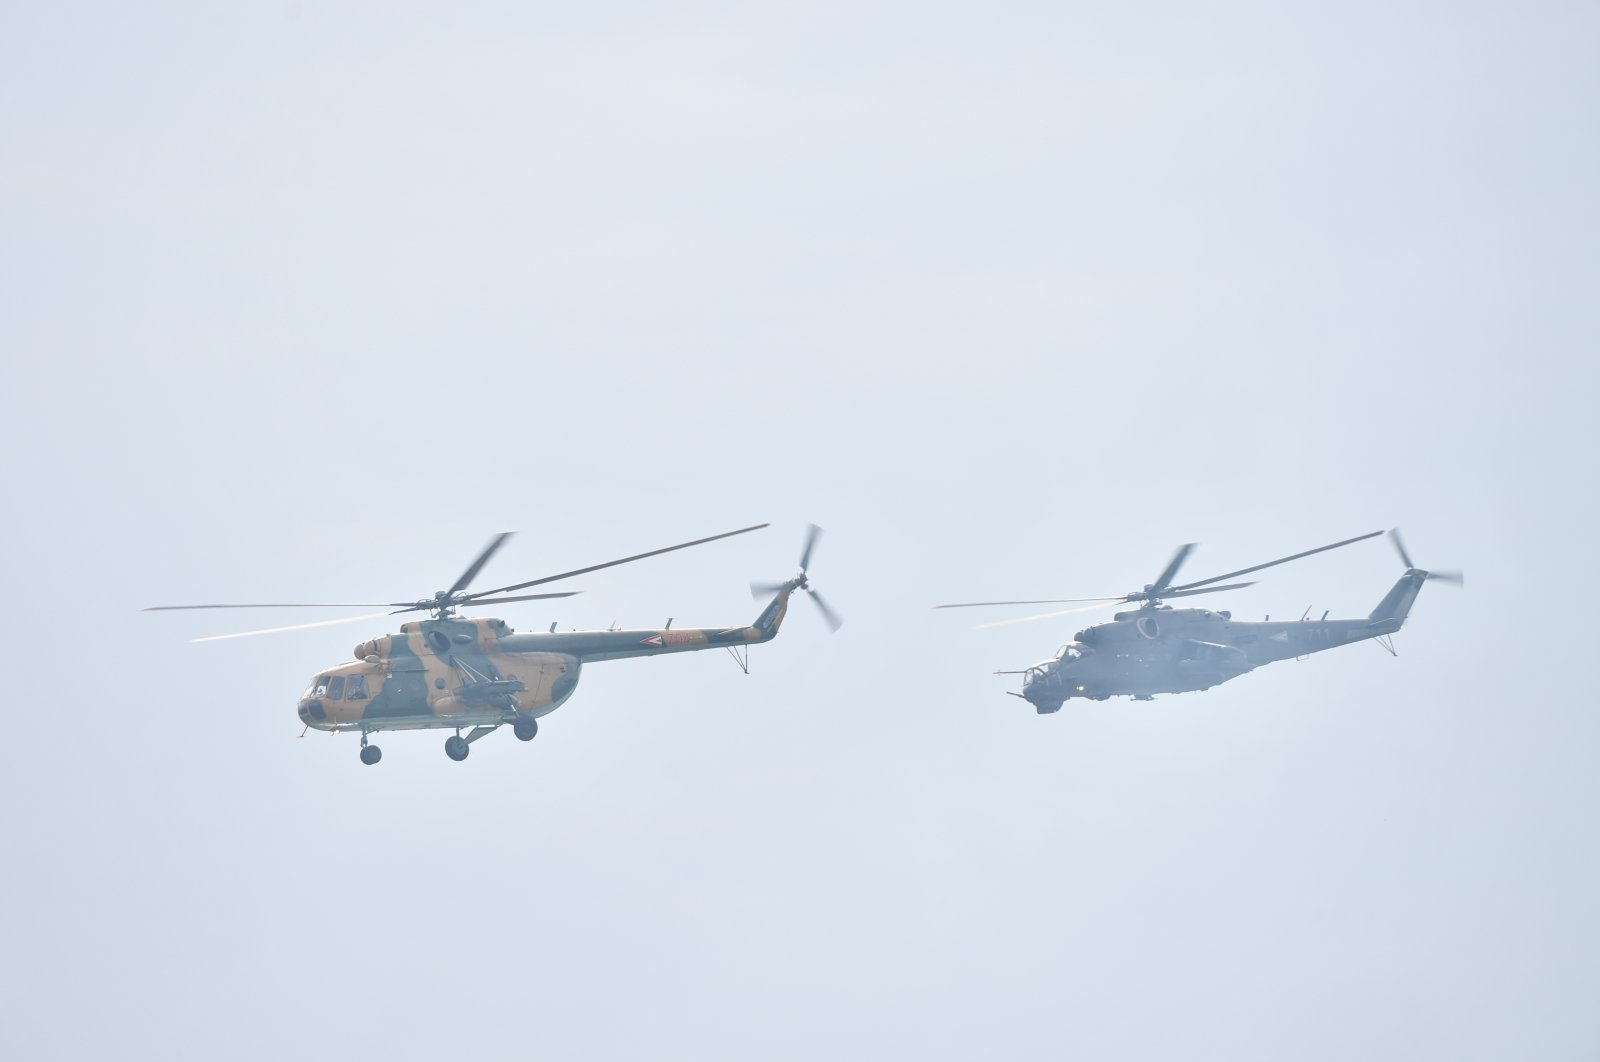 The Hungarian Air Force's Mi-17 transport helicopter (left) and a Mi-24 fighter helicopter fly low during the St. Stephen's Day celebration in Budapest, Hungary, Aug. 20, 2021. (Reuters Photo)